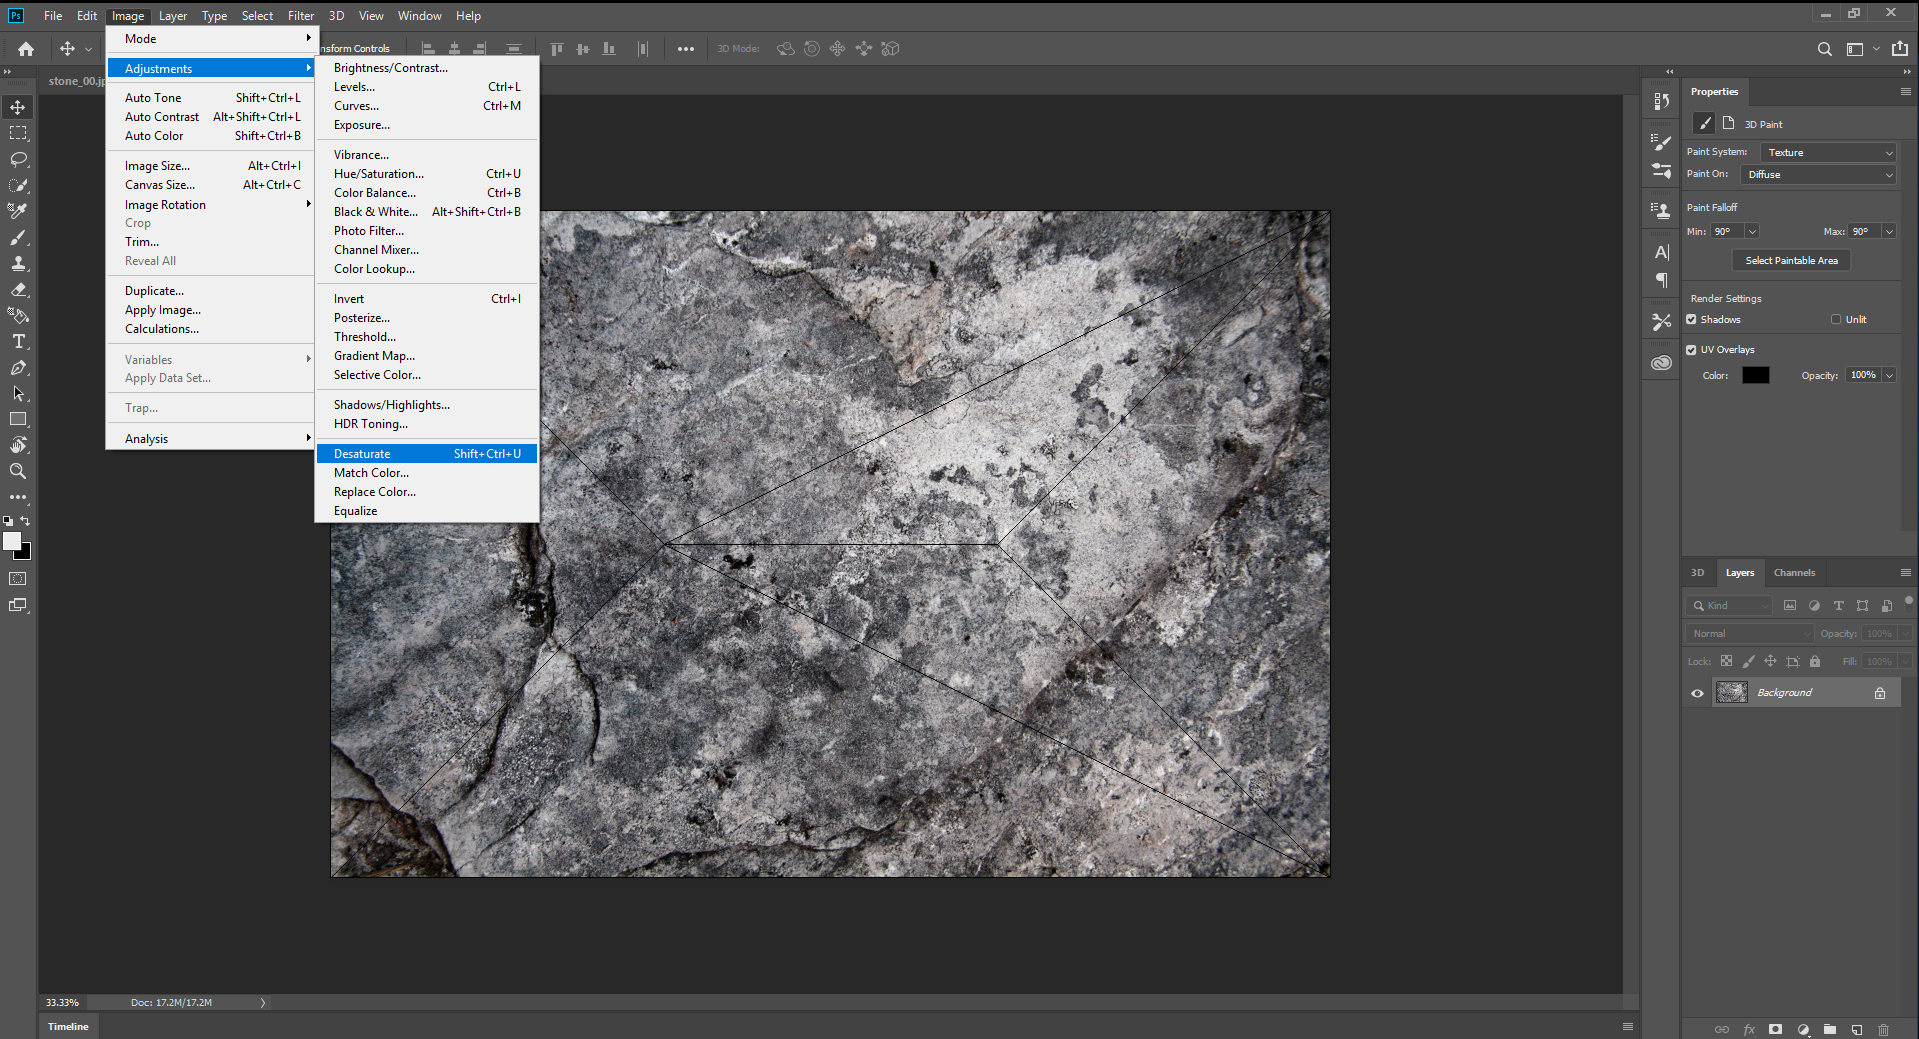 Desaturating Image in Photoshop